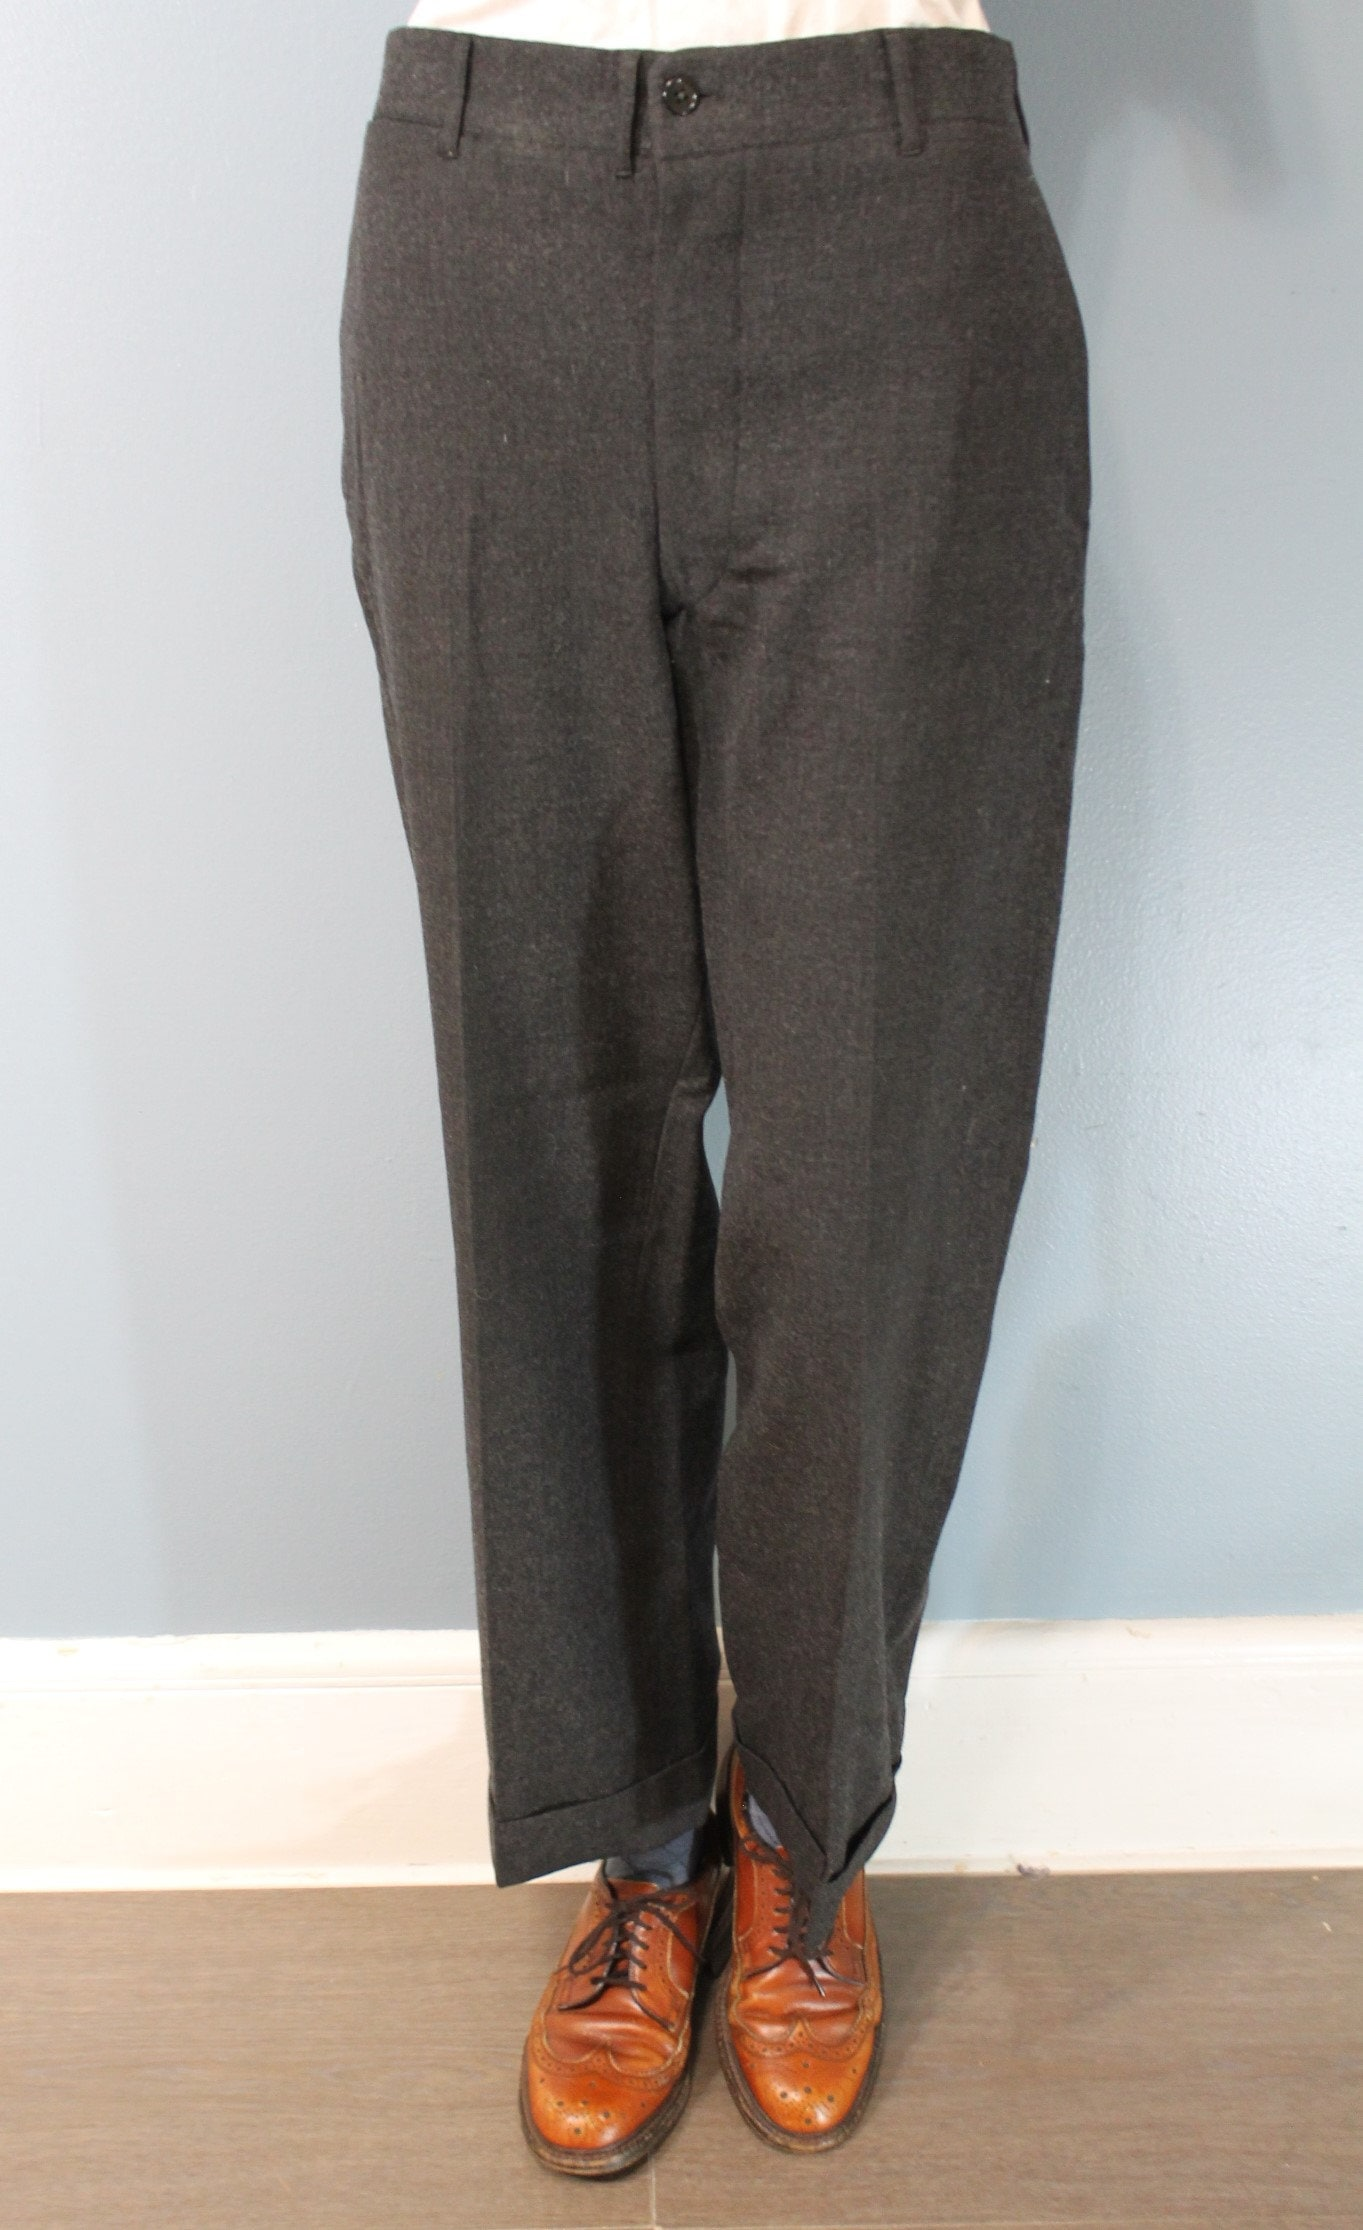 New 1930s Mens Fashion Ties Vintage 1930s Hickey Freeman Mens Hand Tailored Dark Gray Suit Pants High Waisted Pleated Trousers With Cuffs Made in The Usa $0.00 AT vintagedancer.com